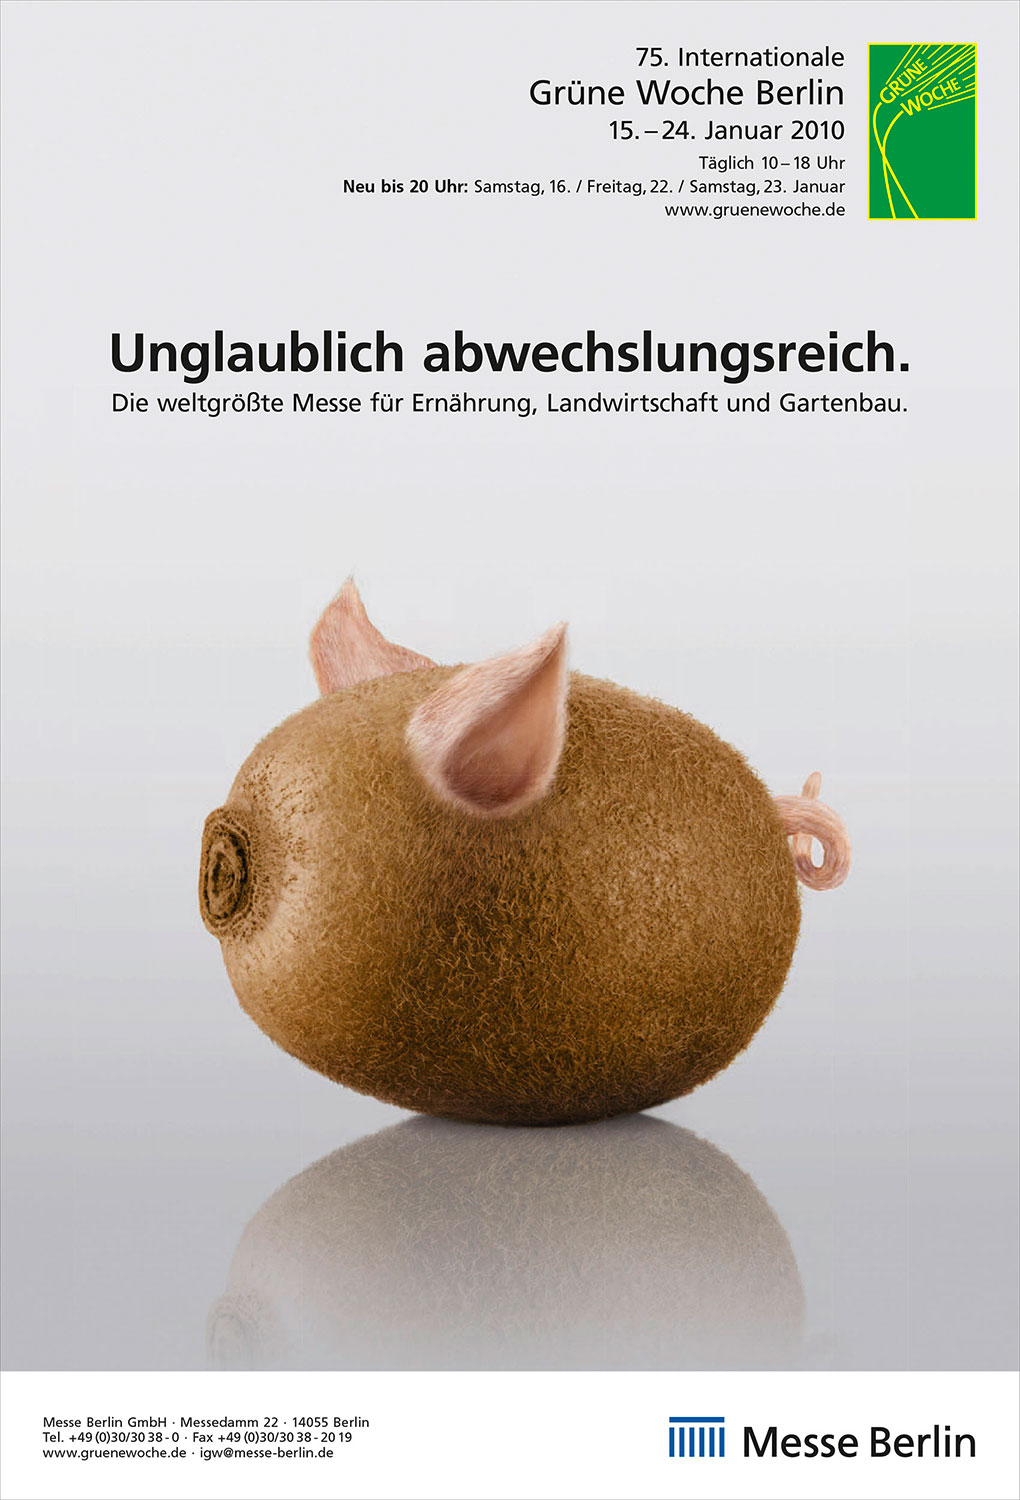 Advertising Photographie Still Life Composing Internationale Grüne Woche Messe Kiwi Schwein Ohren unglaublich abwechslungsreich Idris Kolodziej